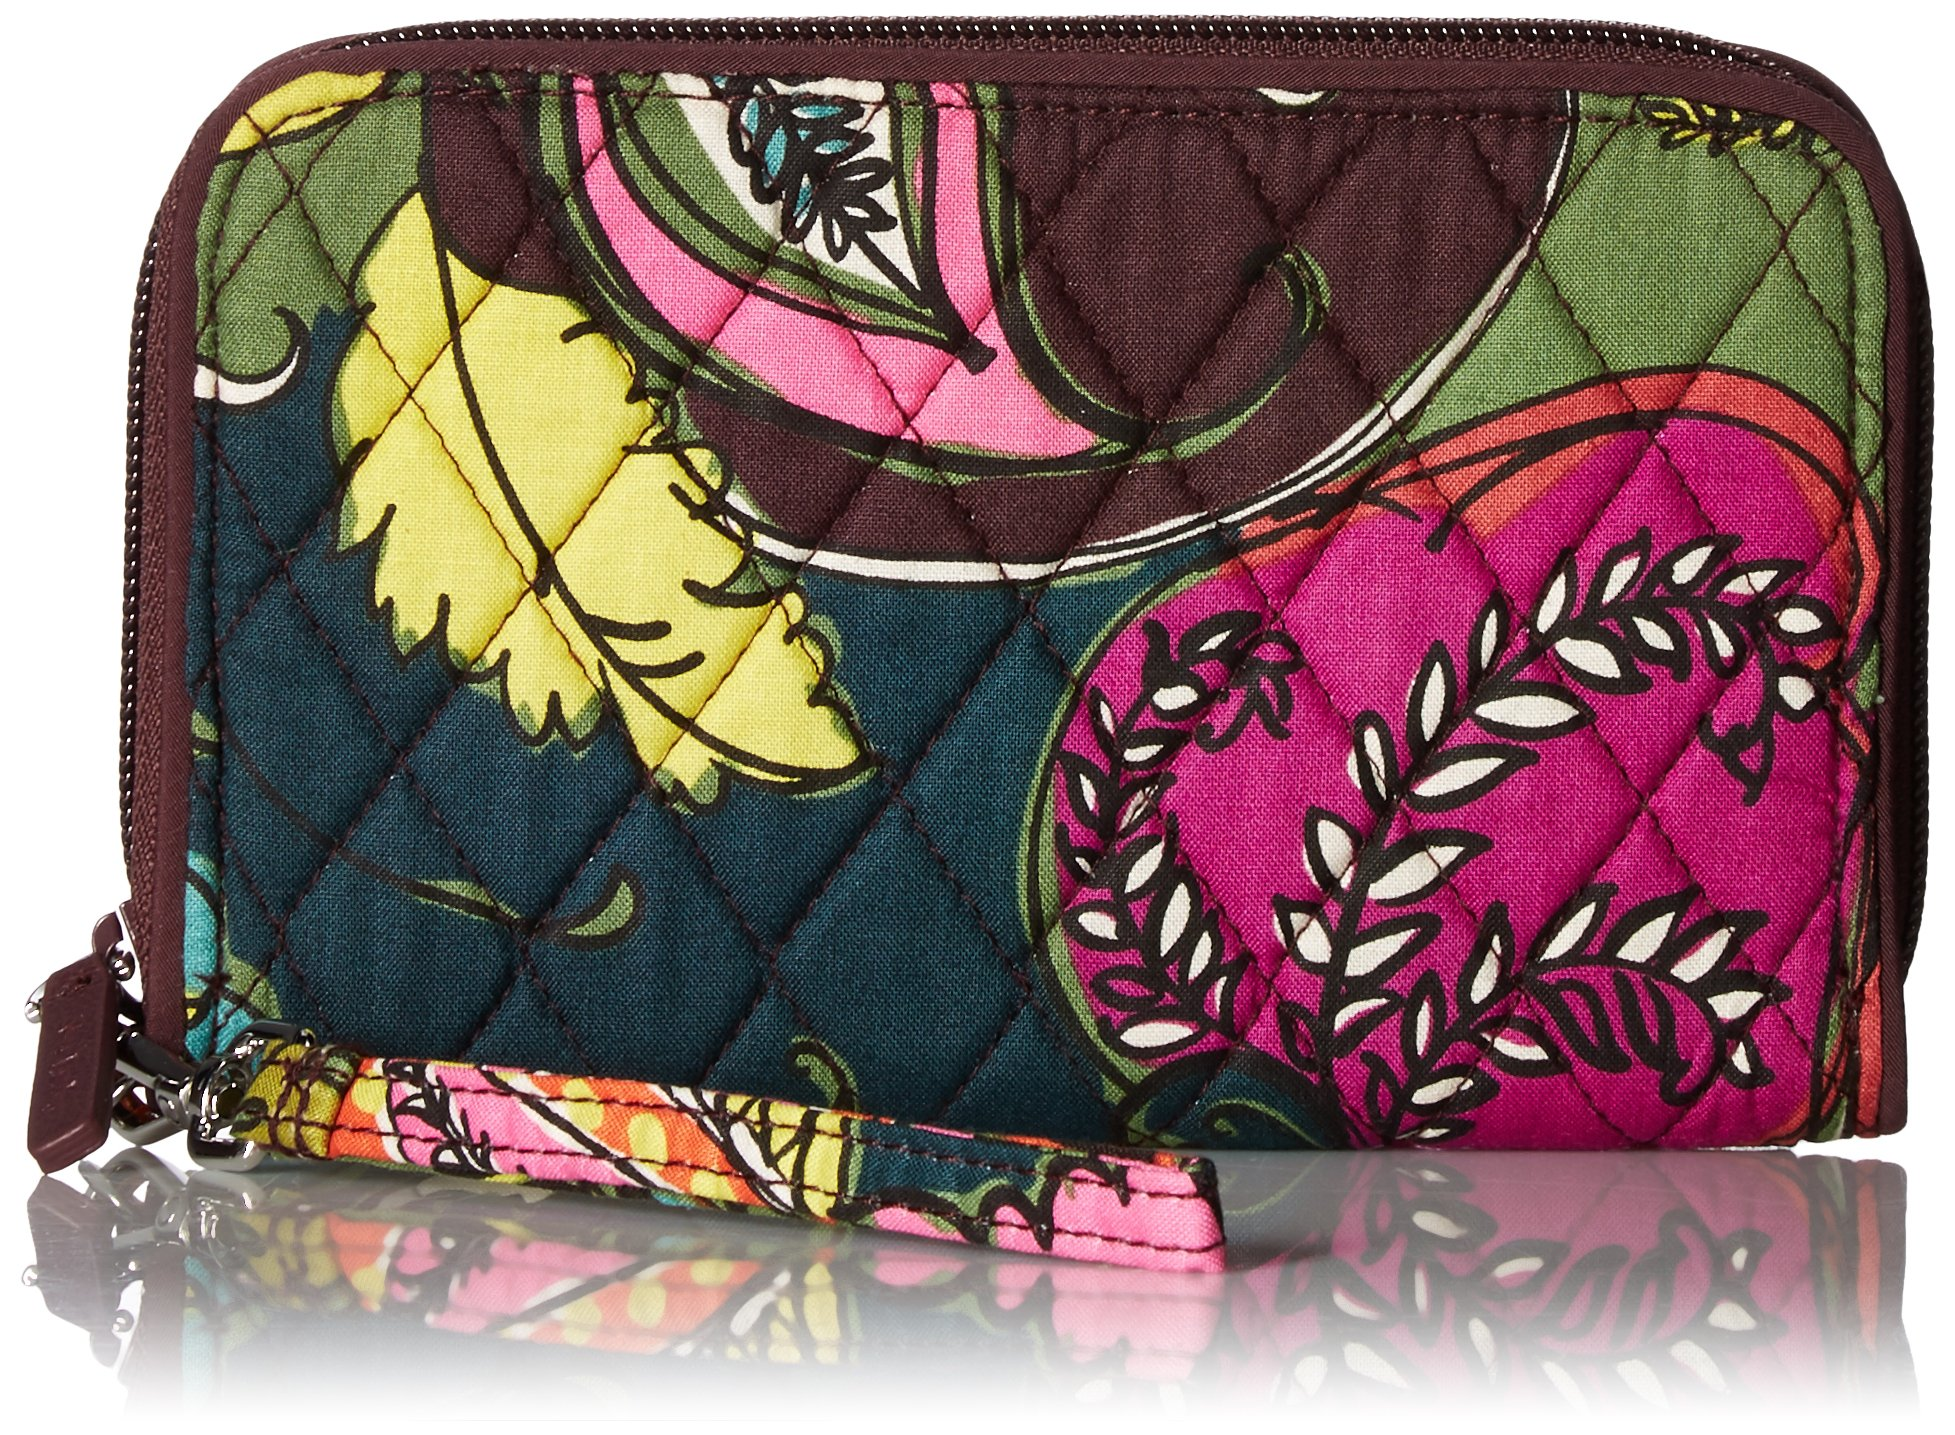 Vera Bradley Rfid Grab and Go Wristlet, Autumn Leaves